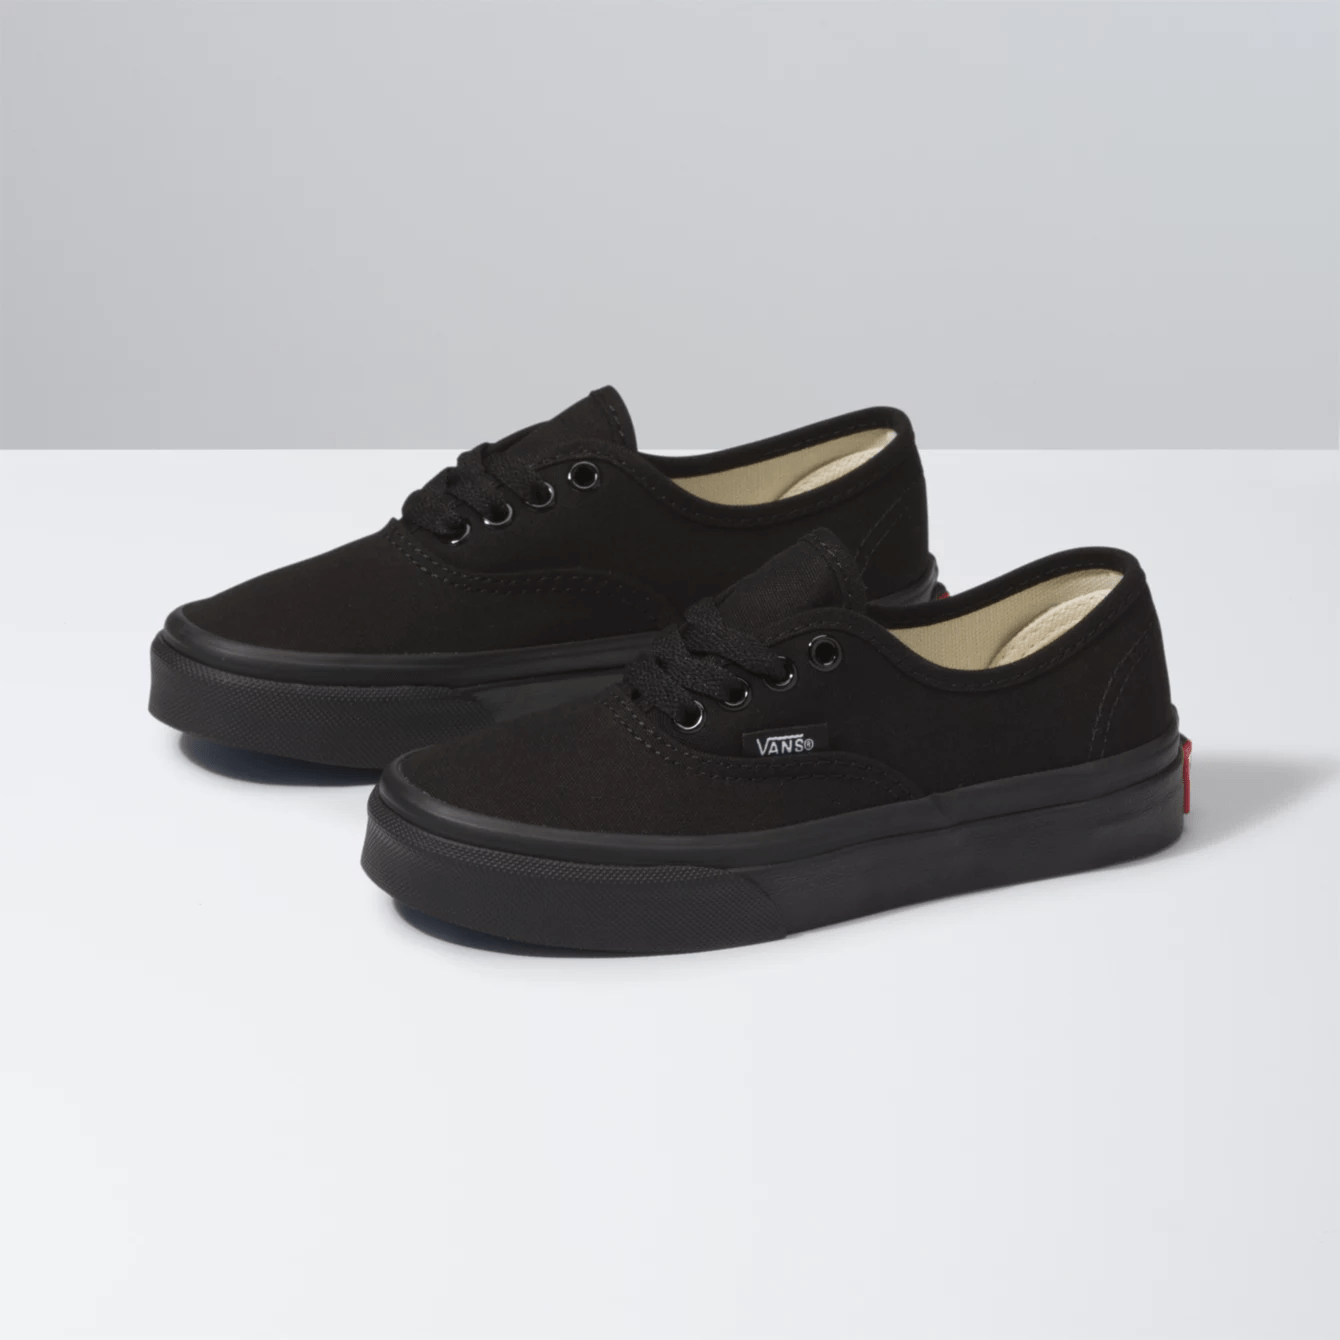 Vans Authentic kids Black/Black side view